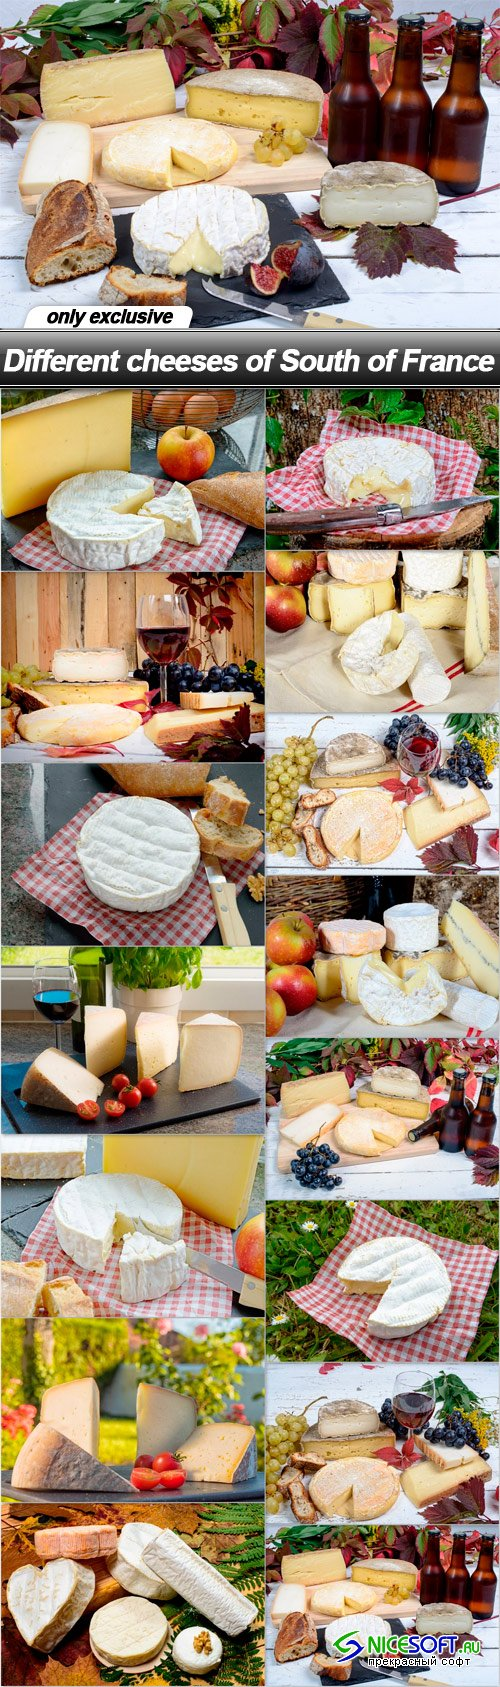 Different cheeses of South of France